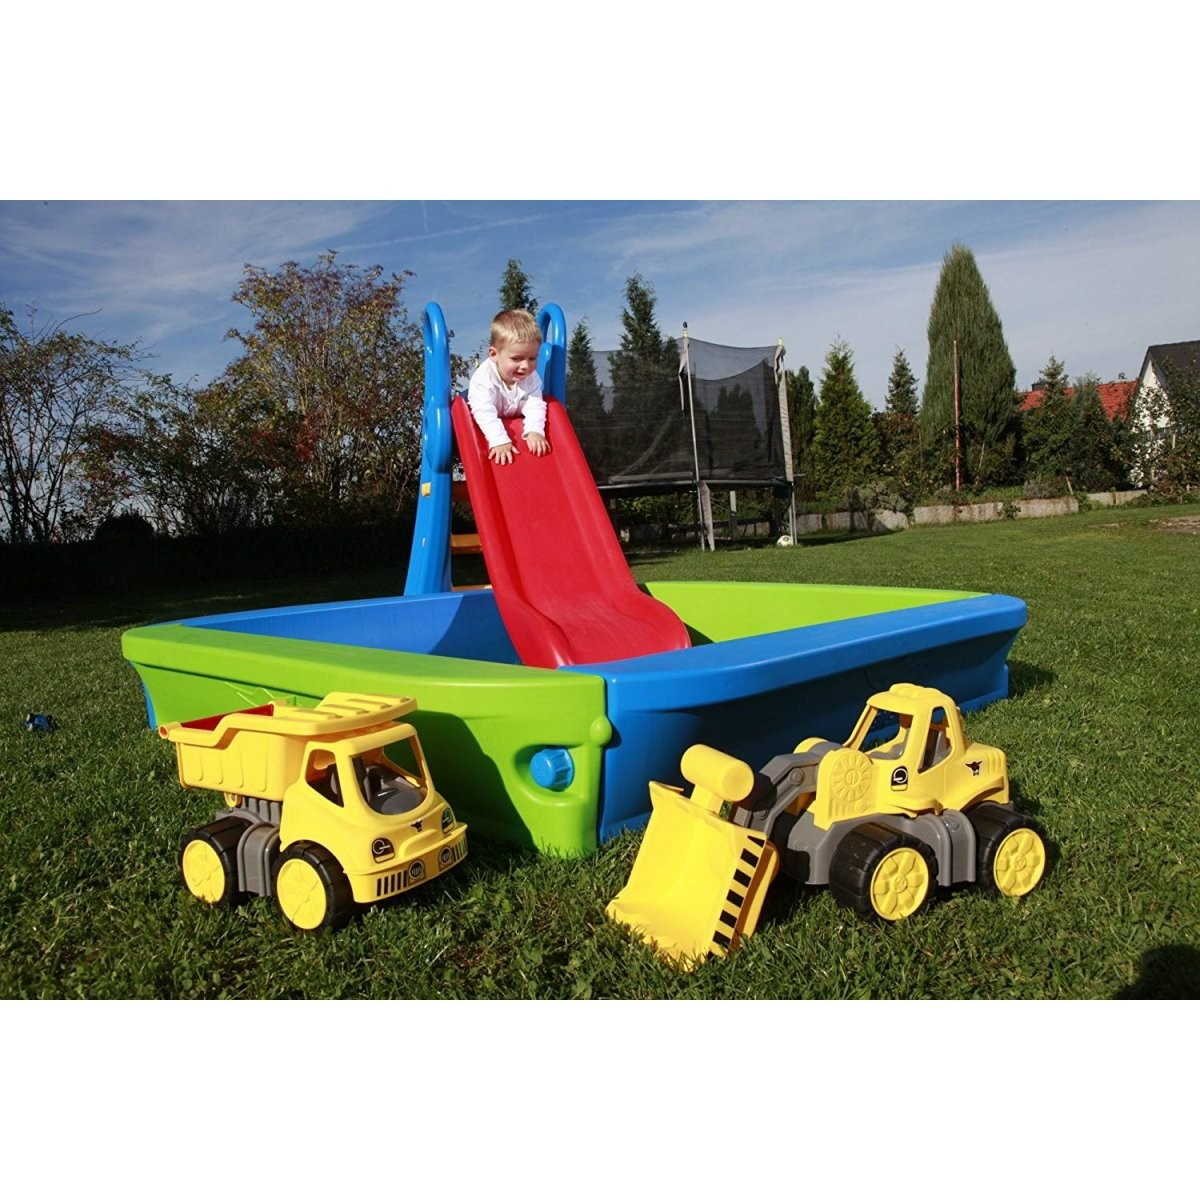 Big 800056710 Rutsche Big Fun Slide Verstellbar von Big Fun Slide Rutsche Bild